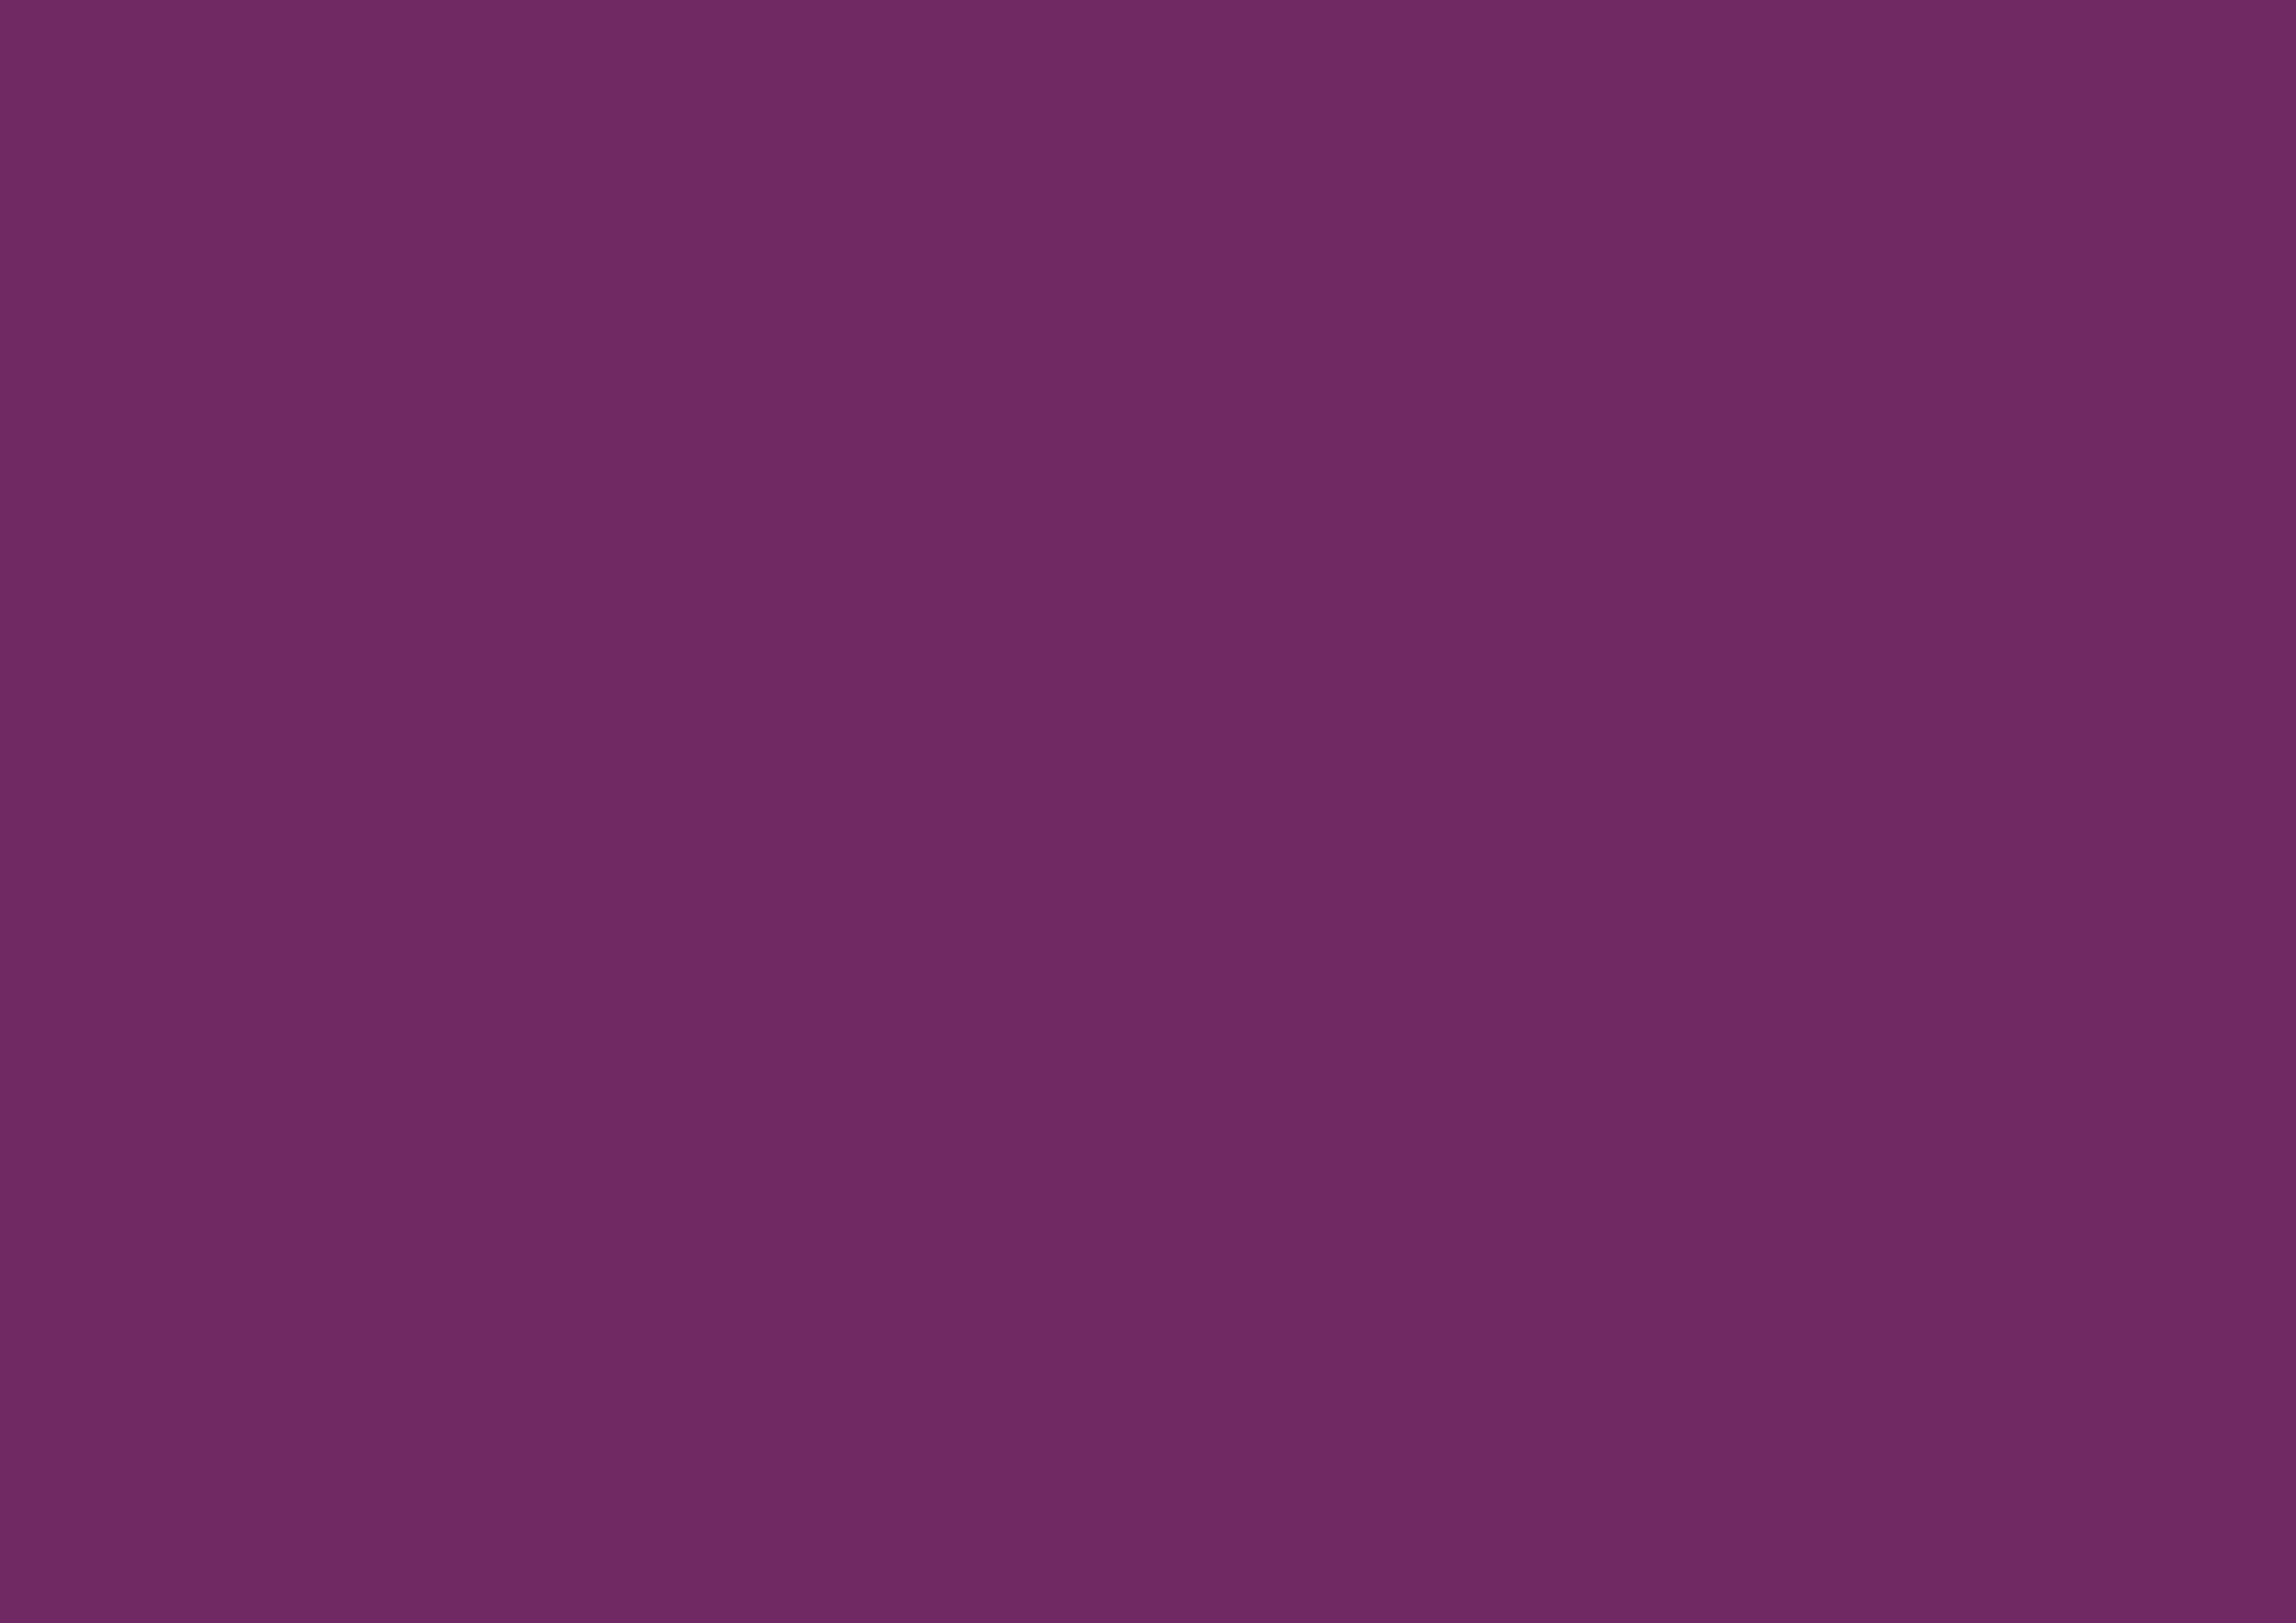 3508x2480 Byzantium Solid Color Background